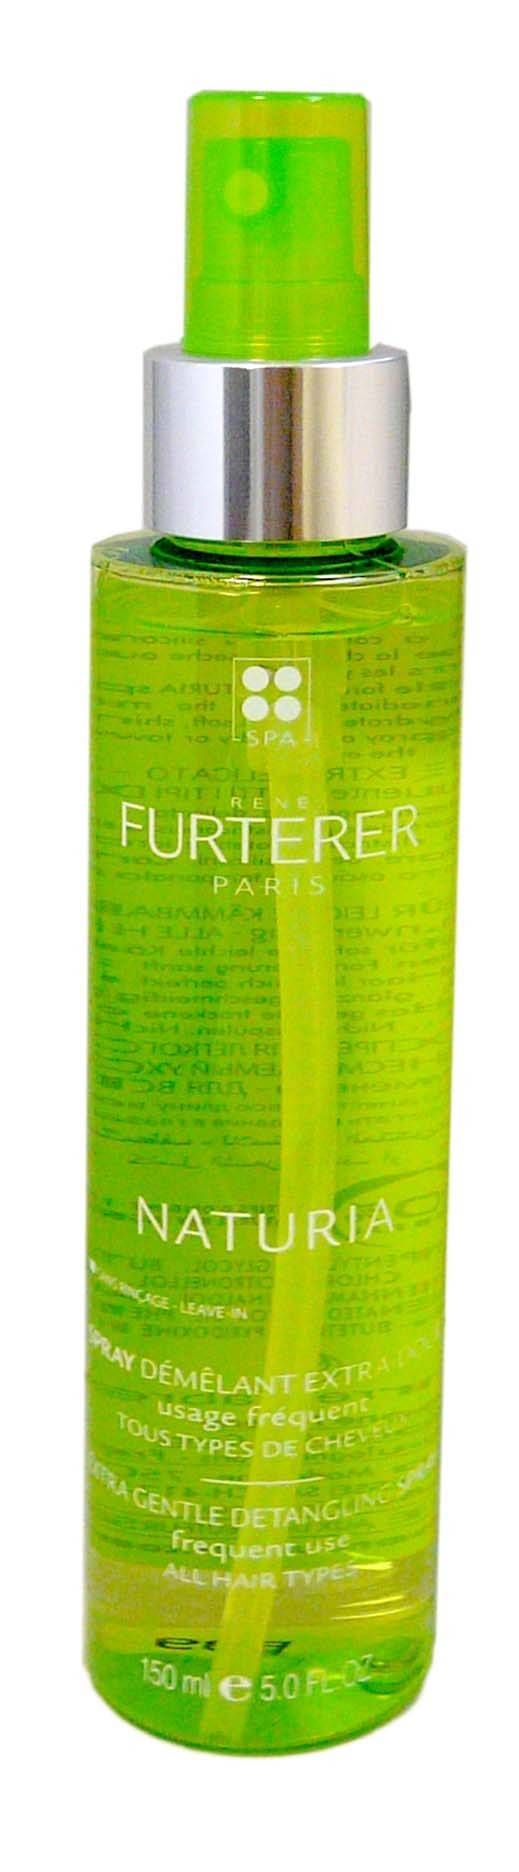 Rene furterer naturia spray demelant  150ml